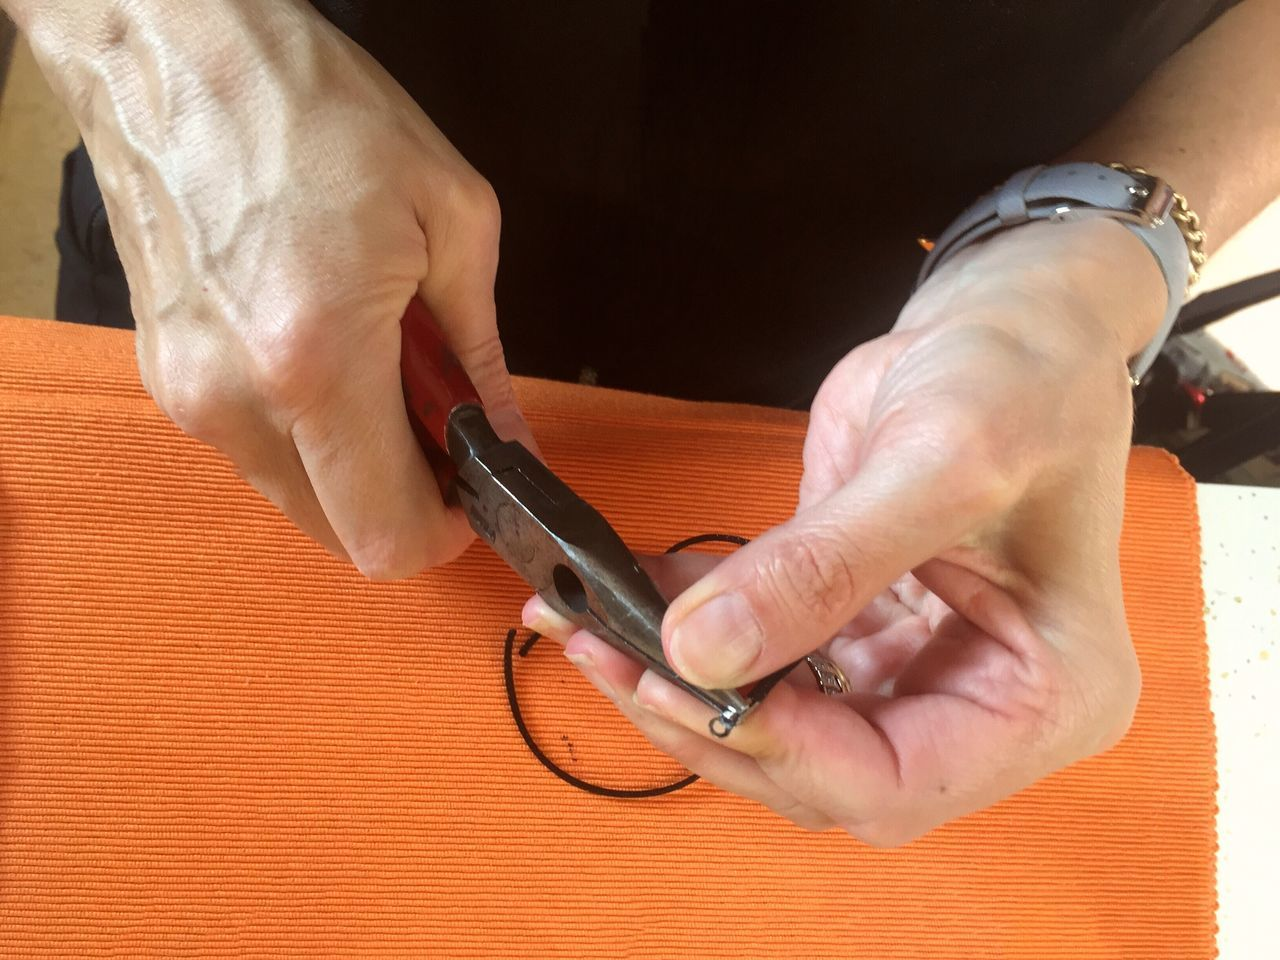 Jewelery Craft Human Hand Real People One Person Close-up Making Jewelry Artist Attaching Fixing Working Hands Pliers Hands At Work